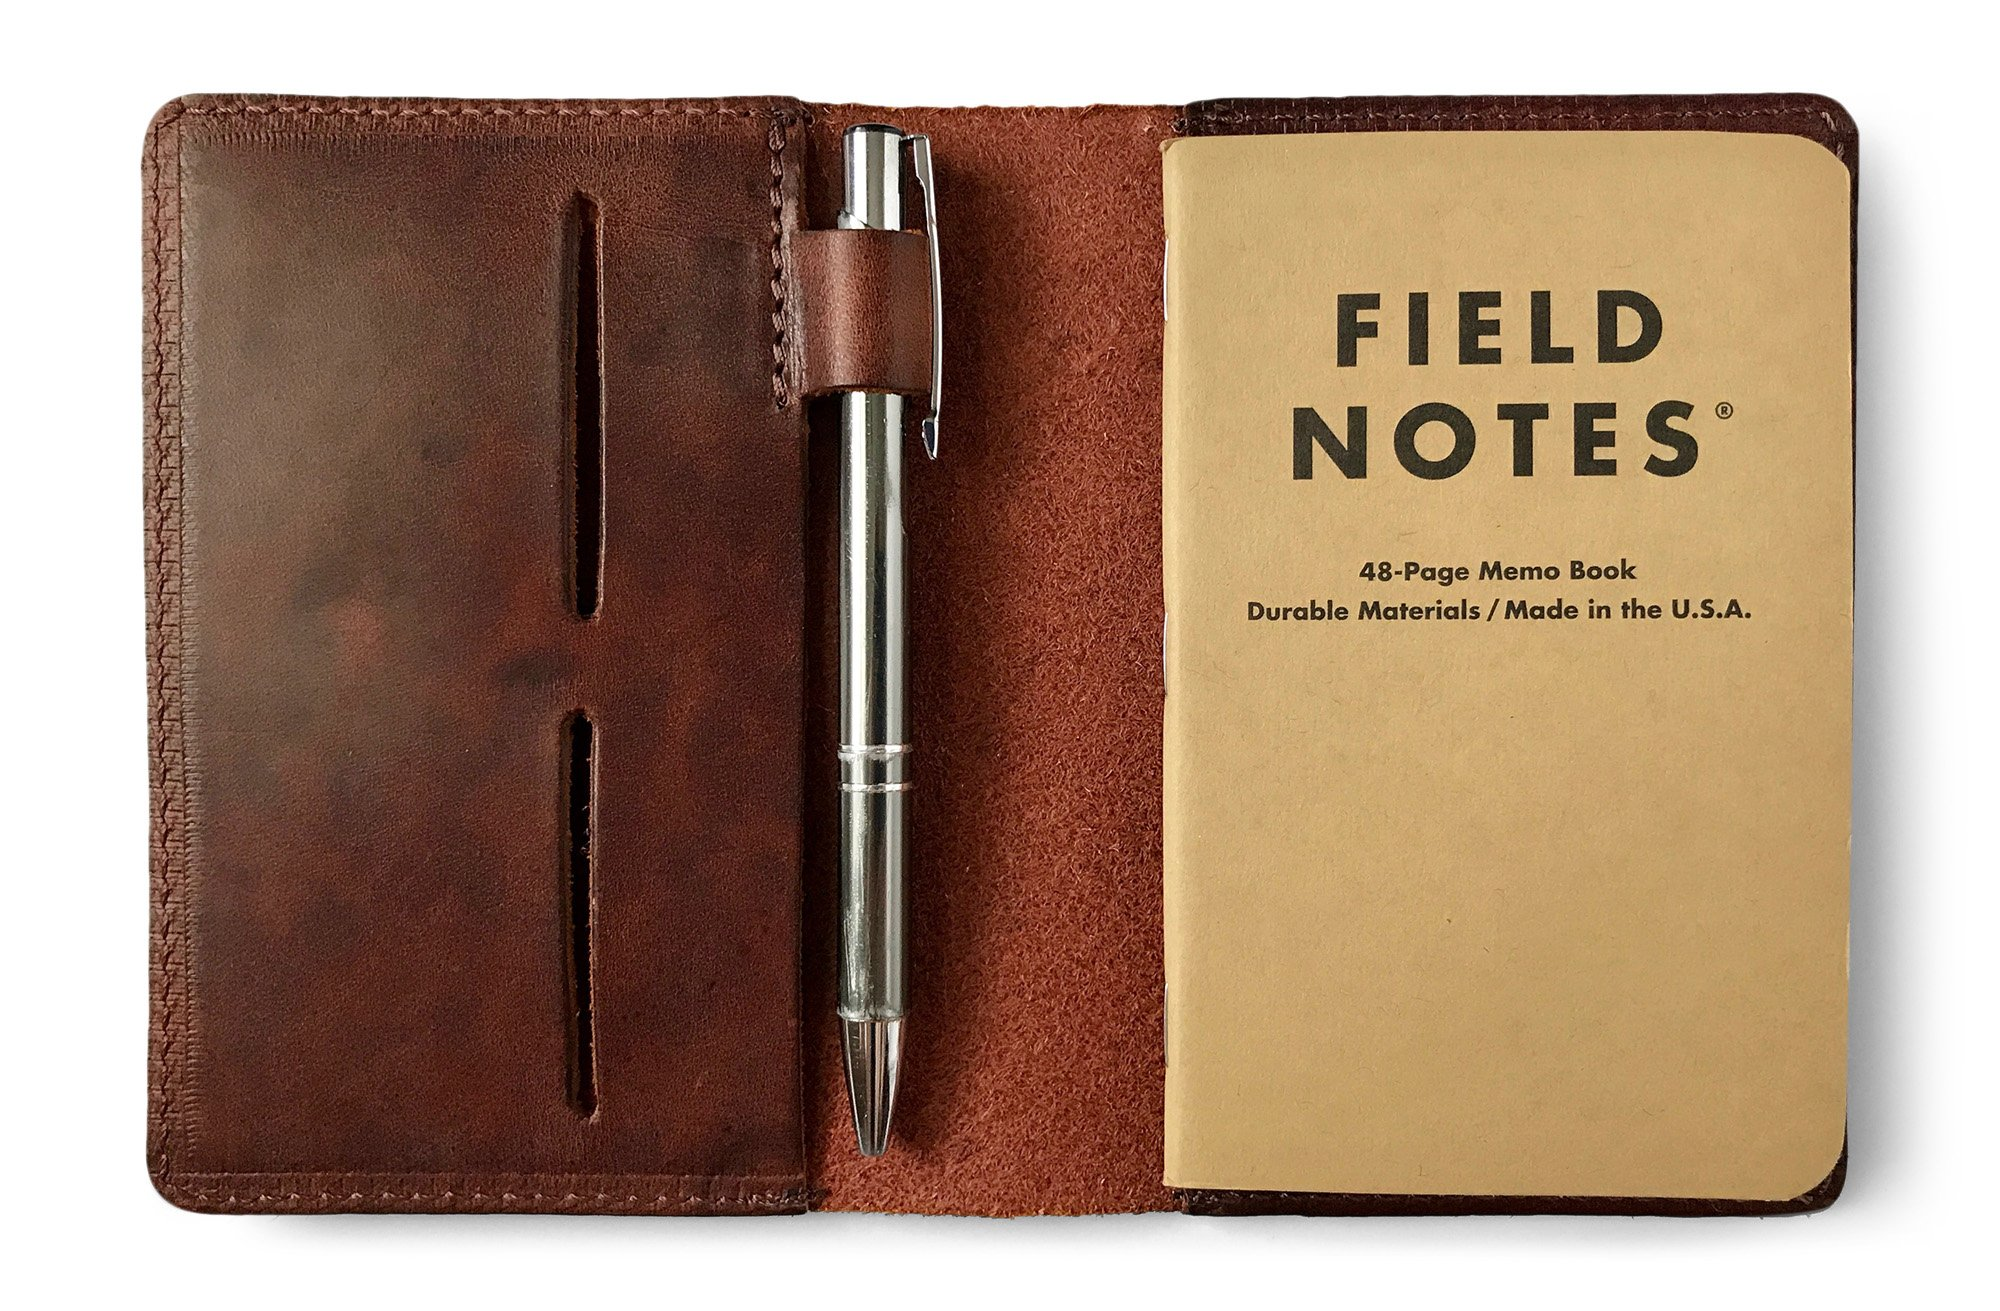 Full Grain Leather Field Notes Notebook Cover Wallet with Pen Holder - Handcrafted in USA by Jackson Wayne - Fits 3.5'' x 5.5'' Journals (Vintage Brown)